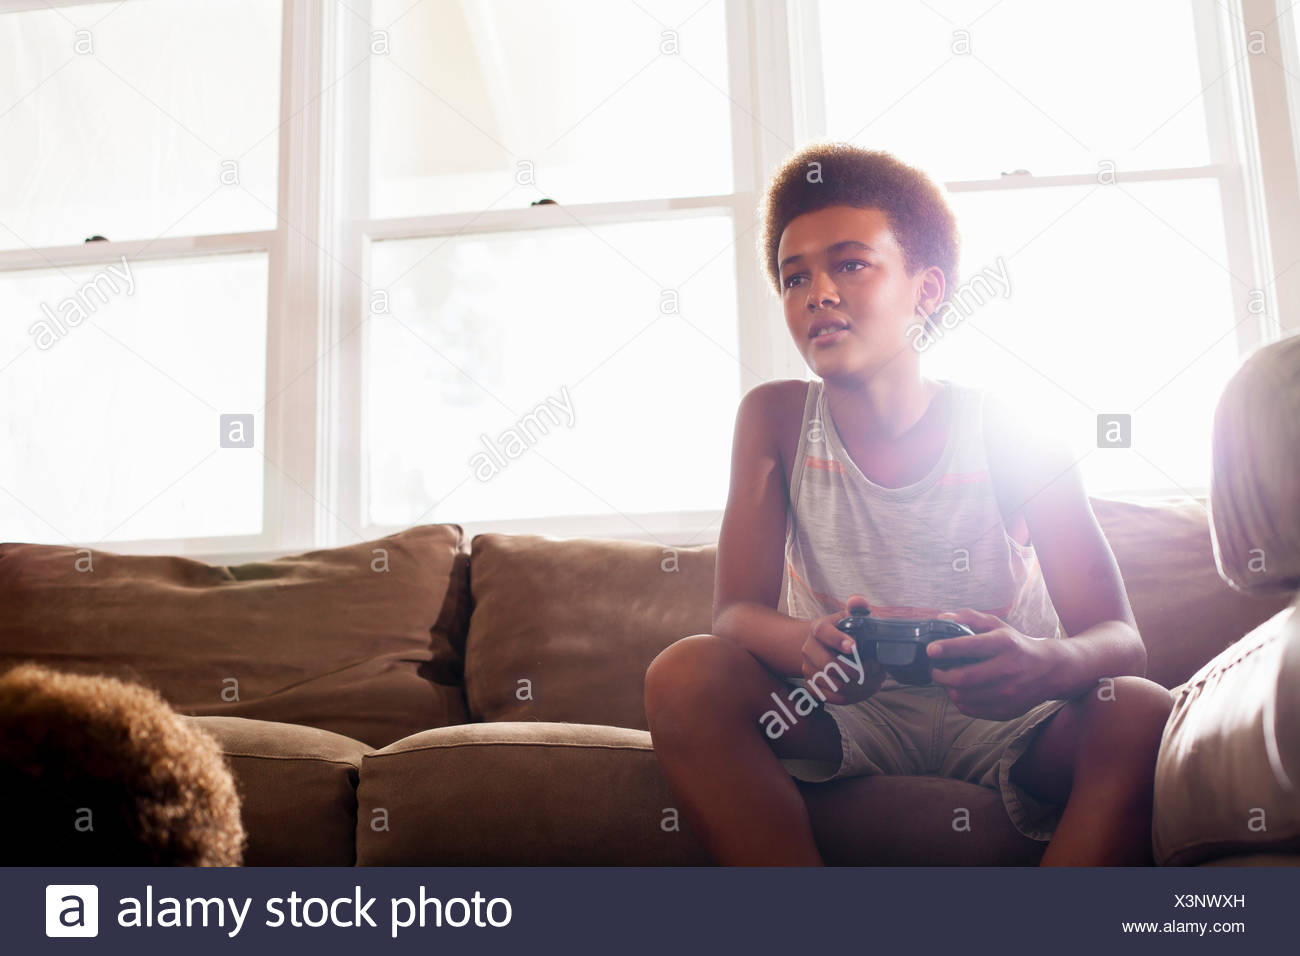 Boy using game controller from living room sofa - Stock Image